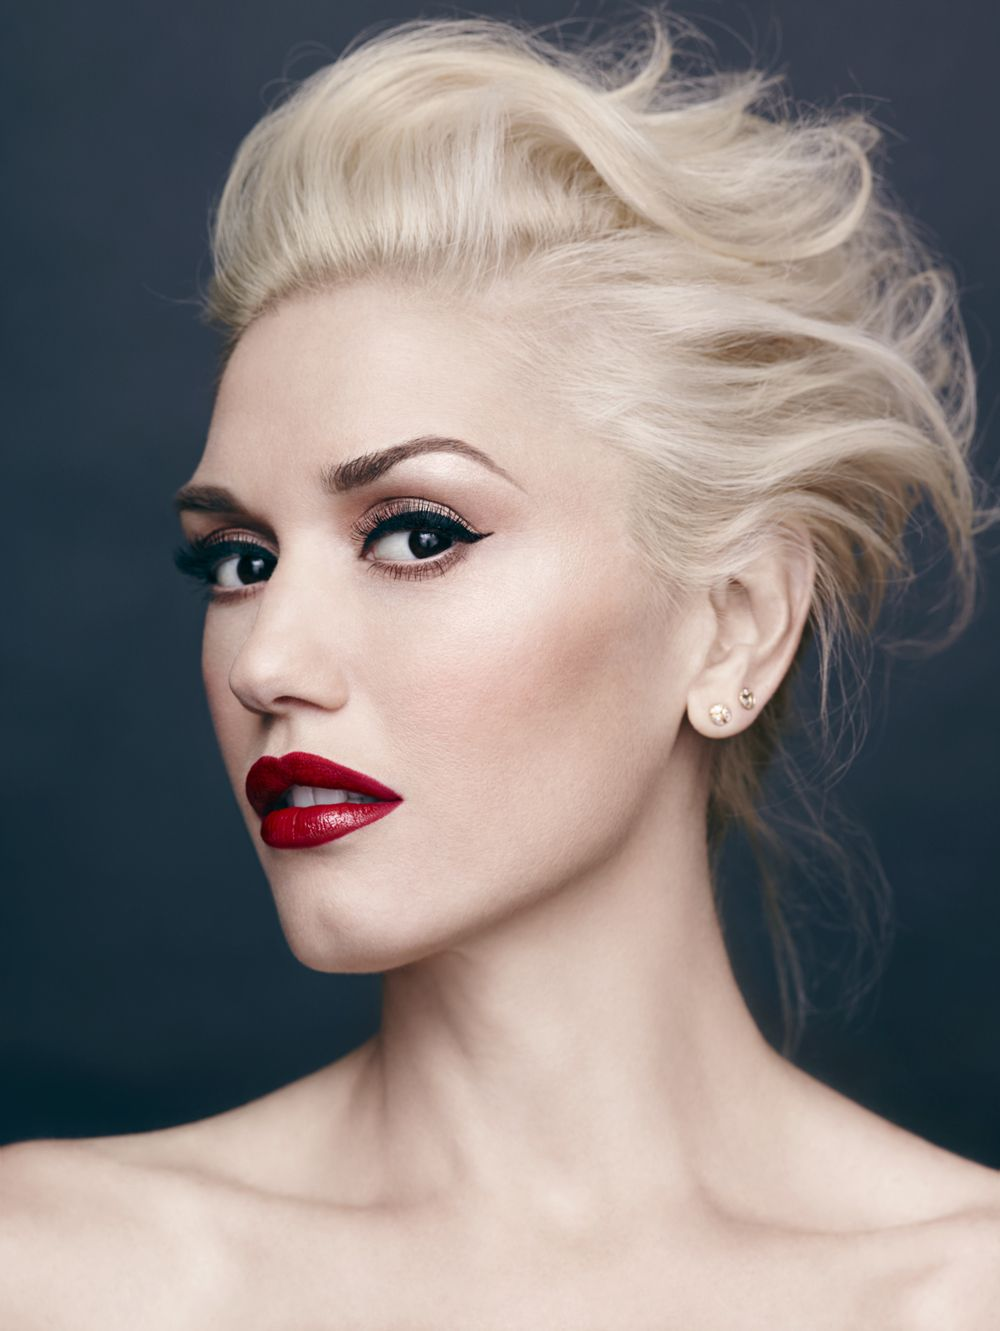 Best 25+ Gwen stefani no makeup ideas on Pinterest | Gwen ... Gwen Stefani